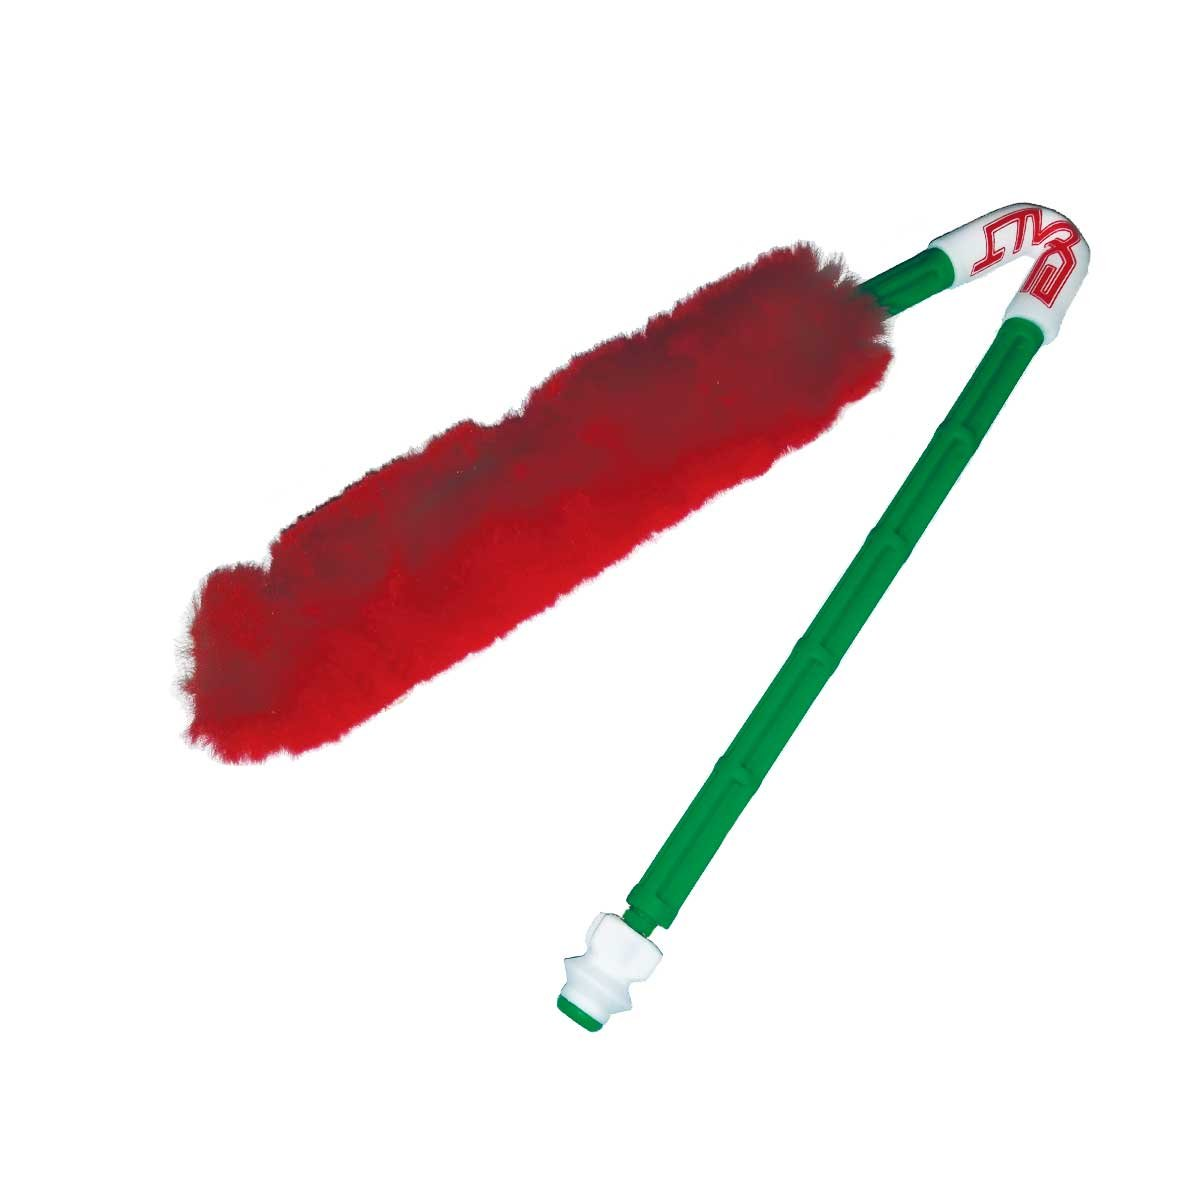 Exalt Paintball Barrel Maid Swab/Squeegee - LE Red/Green by Exalt